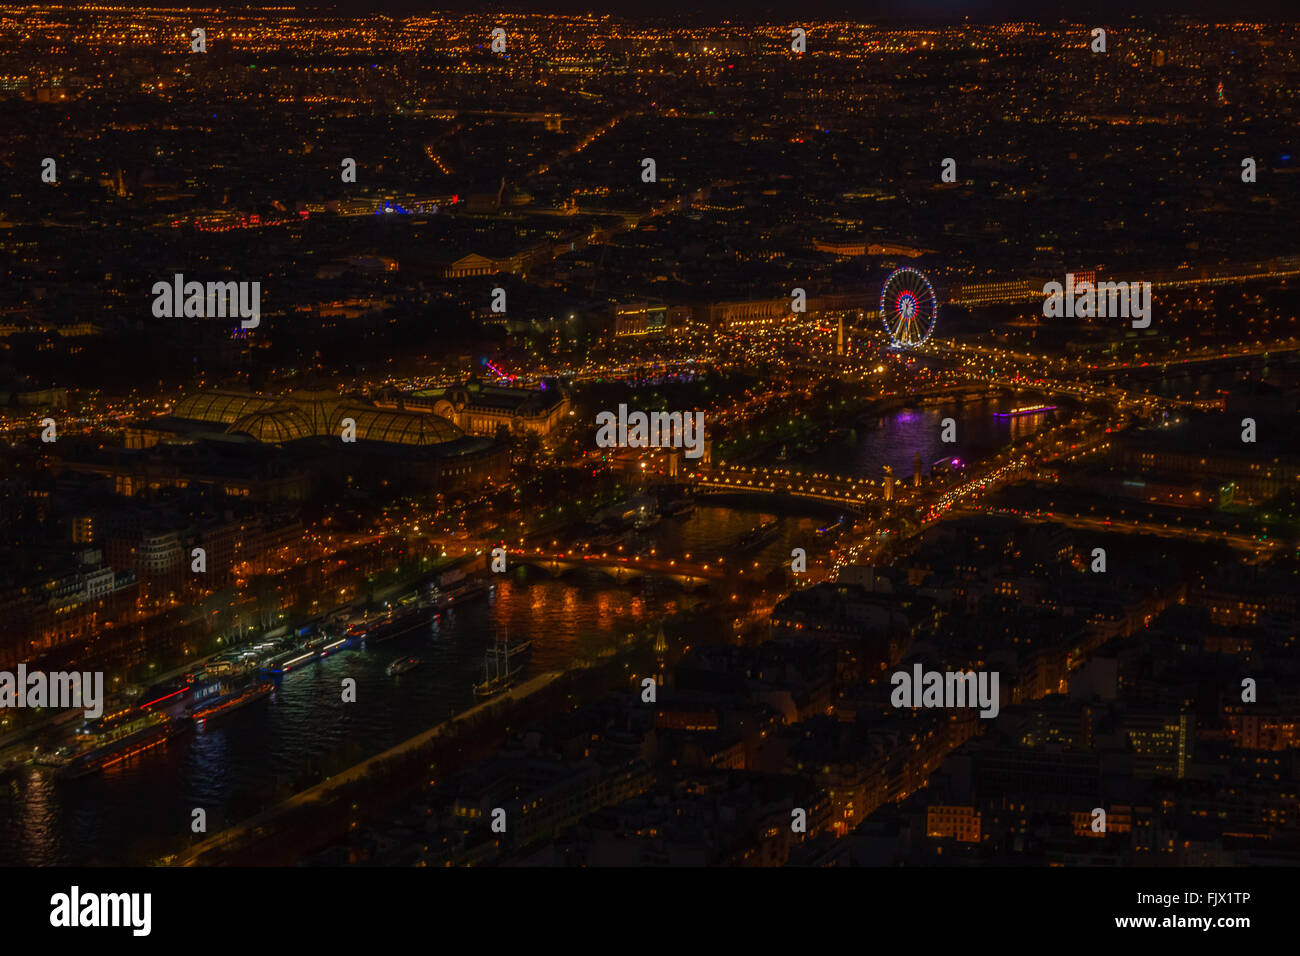 High Angle View Of Illuminated Cityscape Seen From Eiffel Tower - Stock Image